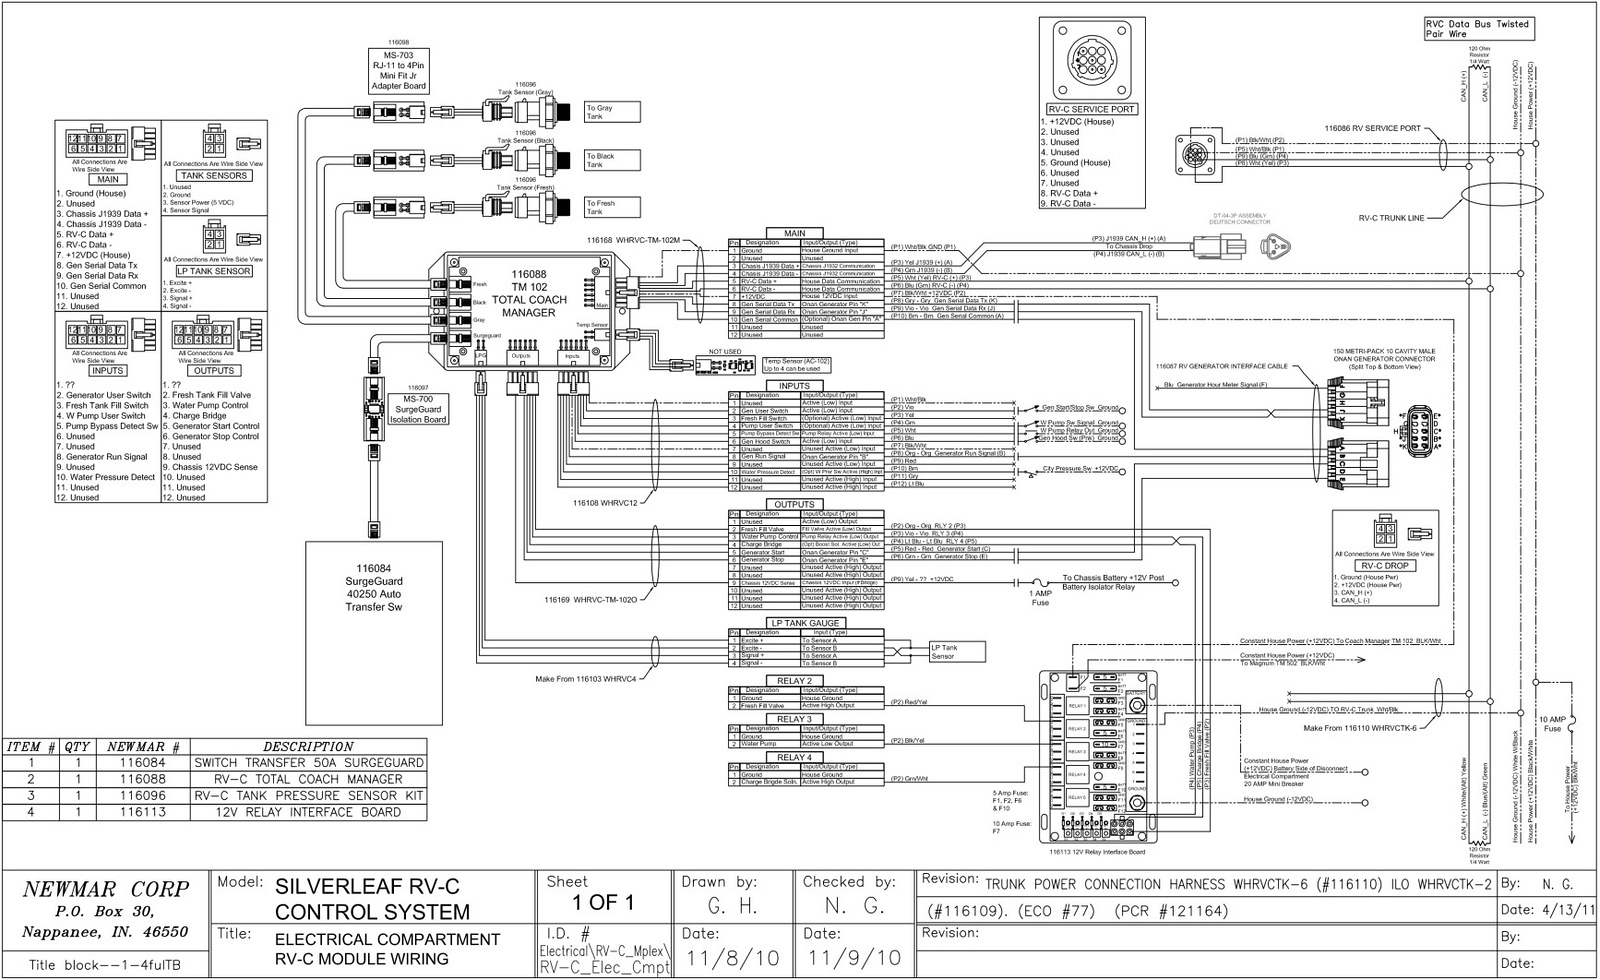 Newmar technical information irv2 forums this image has been resized click this bar to view the full image the original image is sized 12 freerunsca Image collections